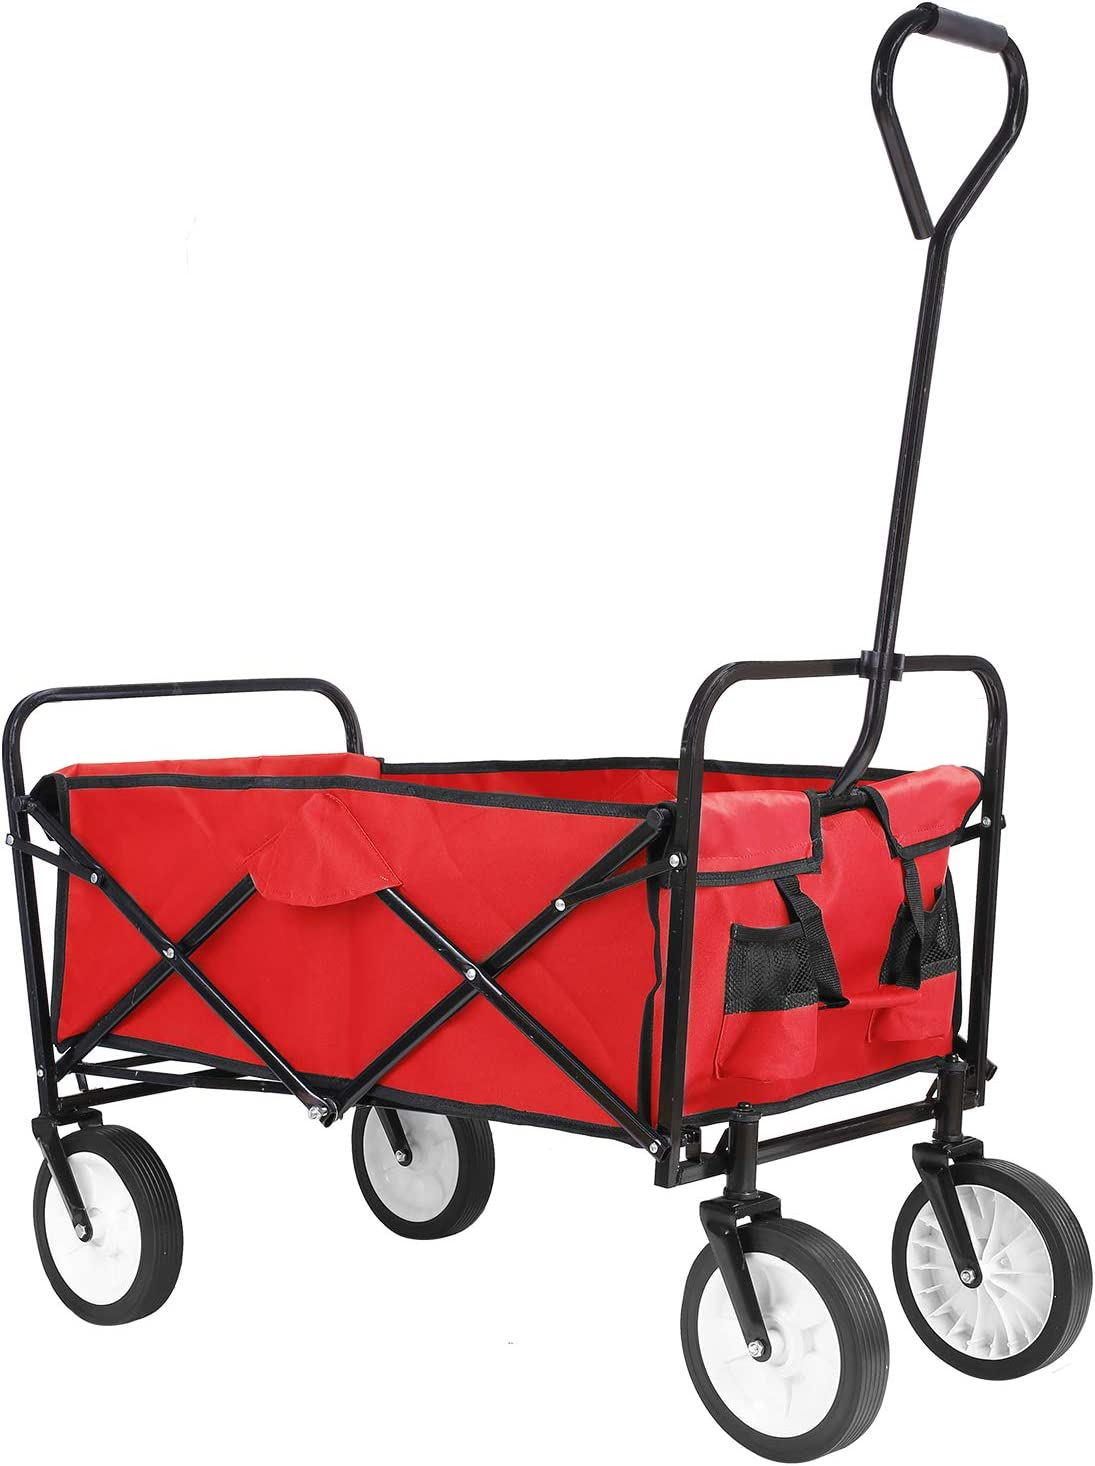 Collapsible Outdoor Utility Wagon, Heavy Duty Folding Garden Portable Hand Cart, with 8 Rubber Wheels and Drink Holder, Suit for Shopping and Park Picnic, Beach Trip and Camping Red